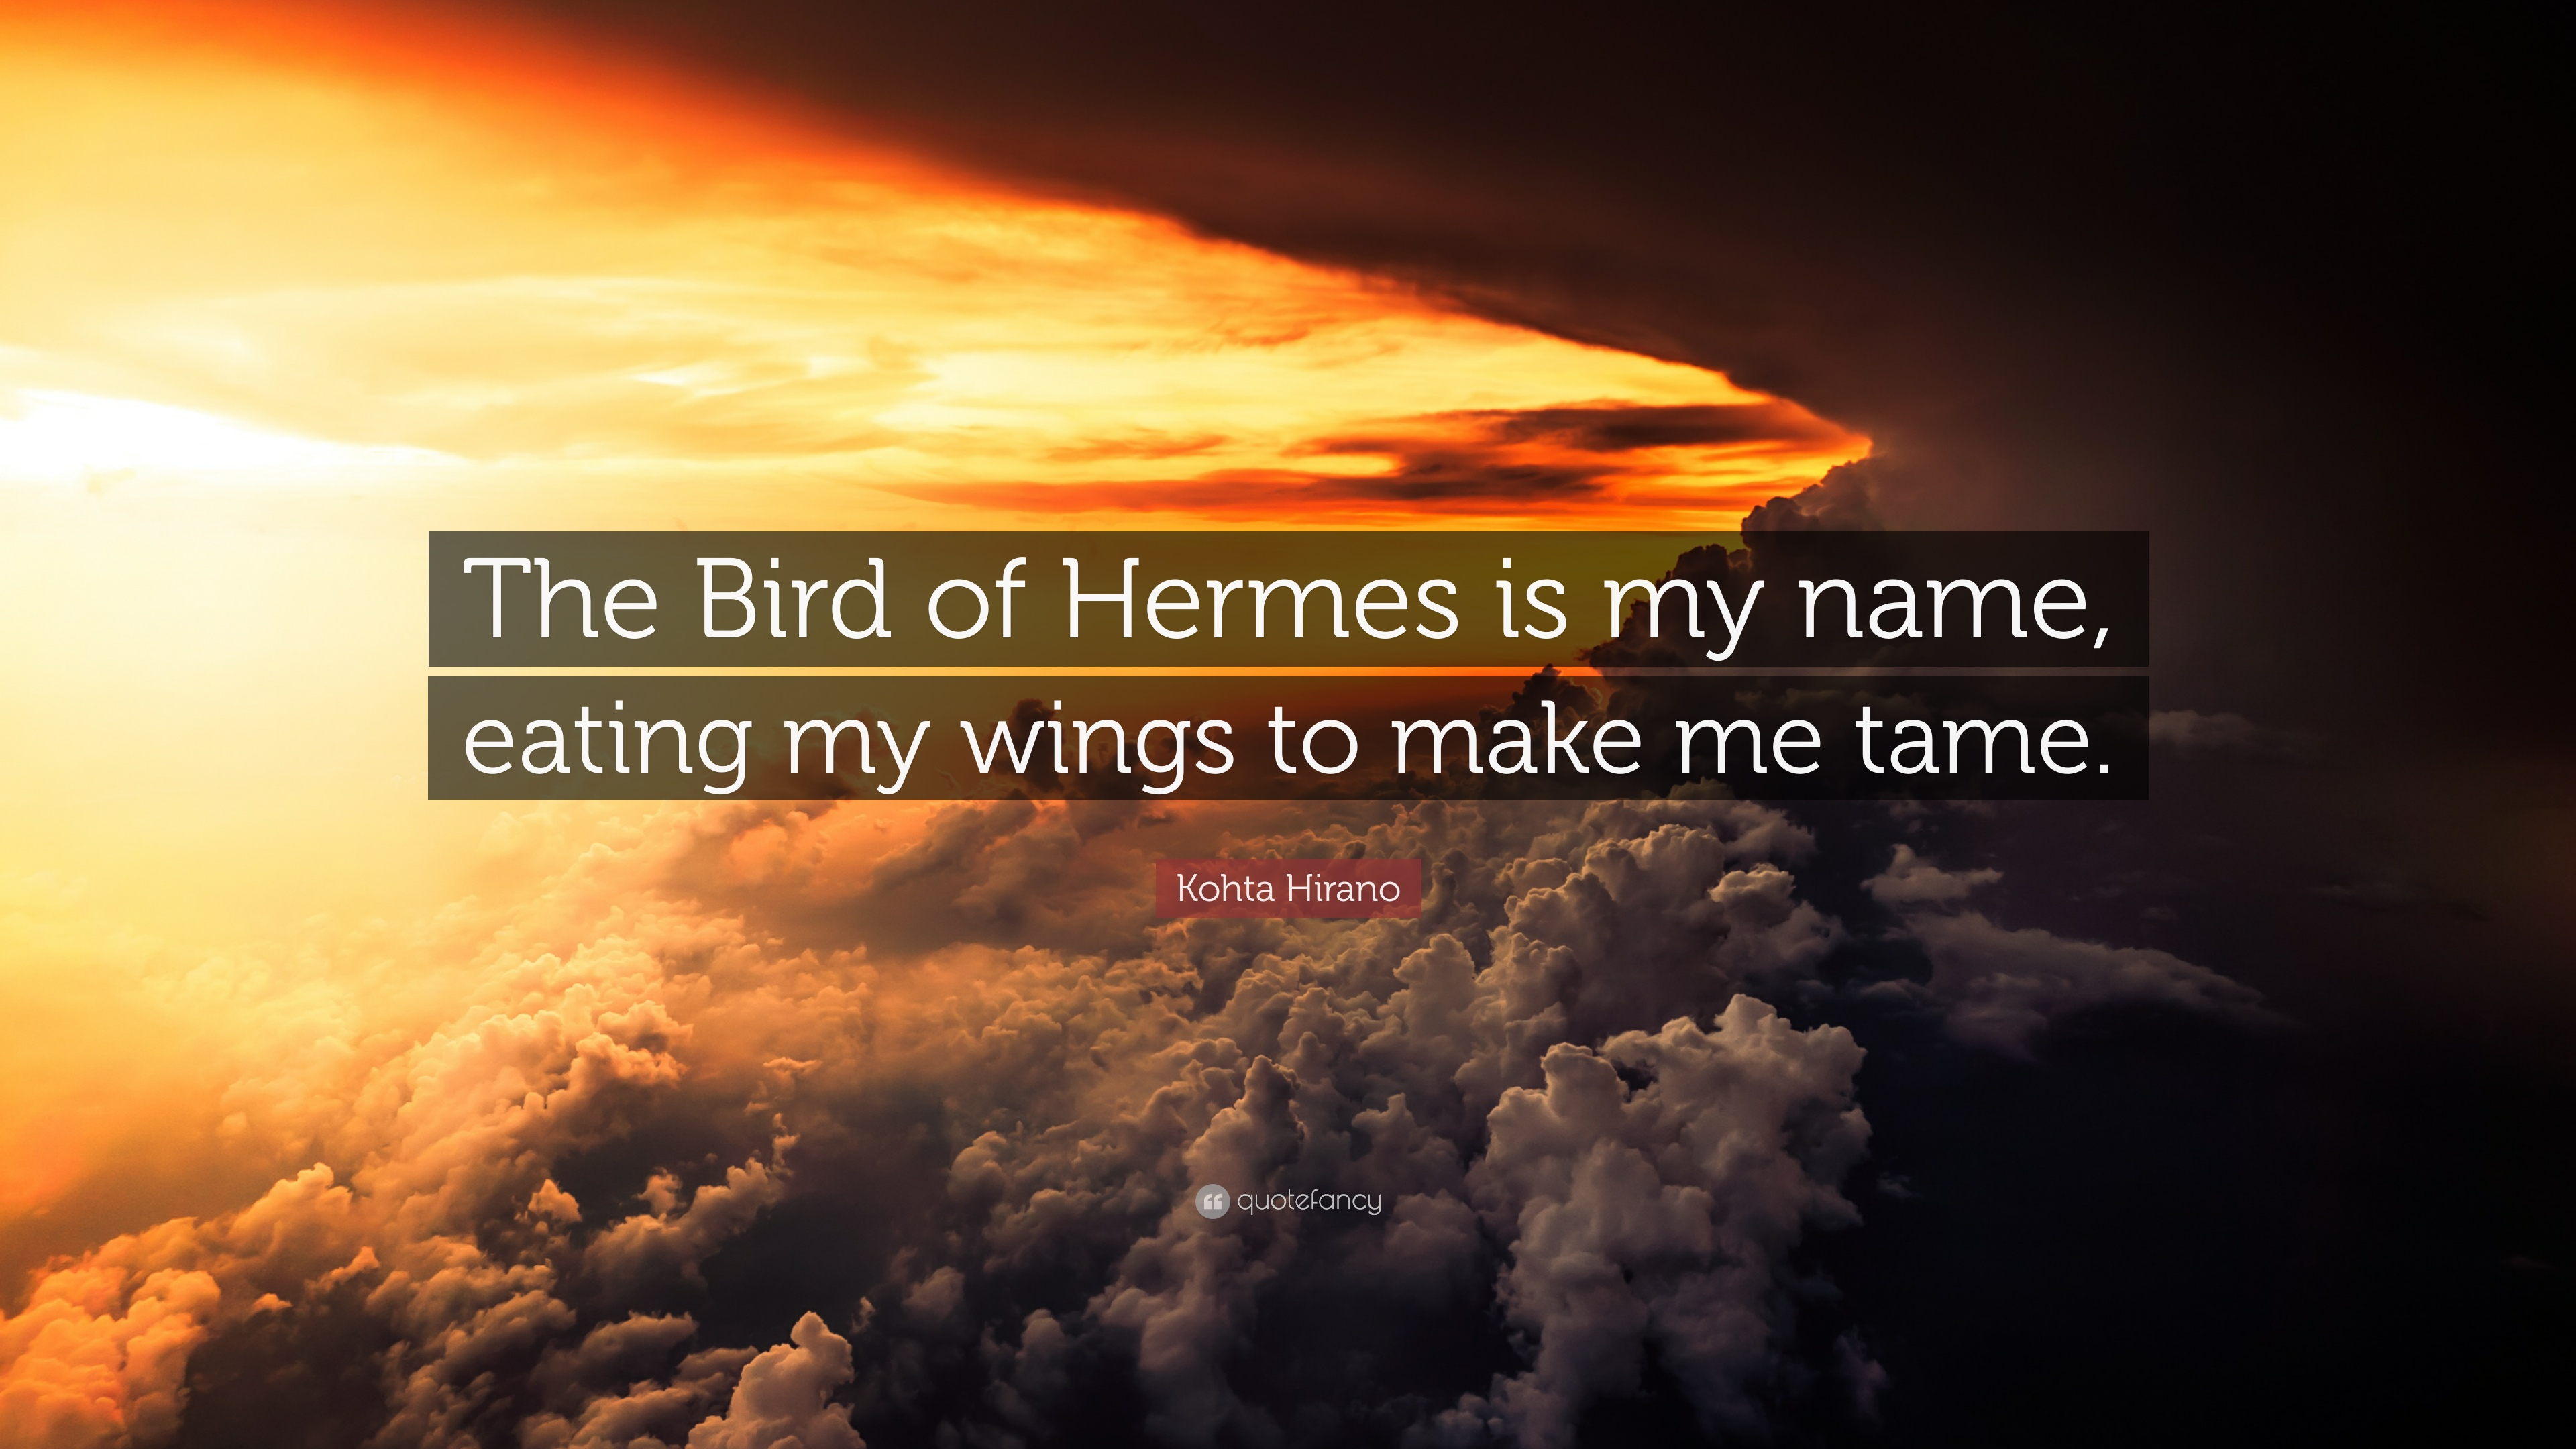 the bird of hermes